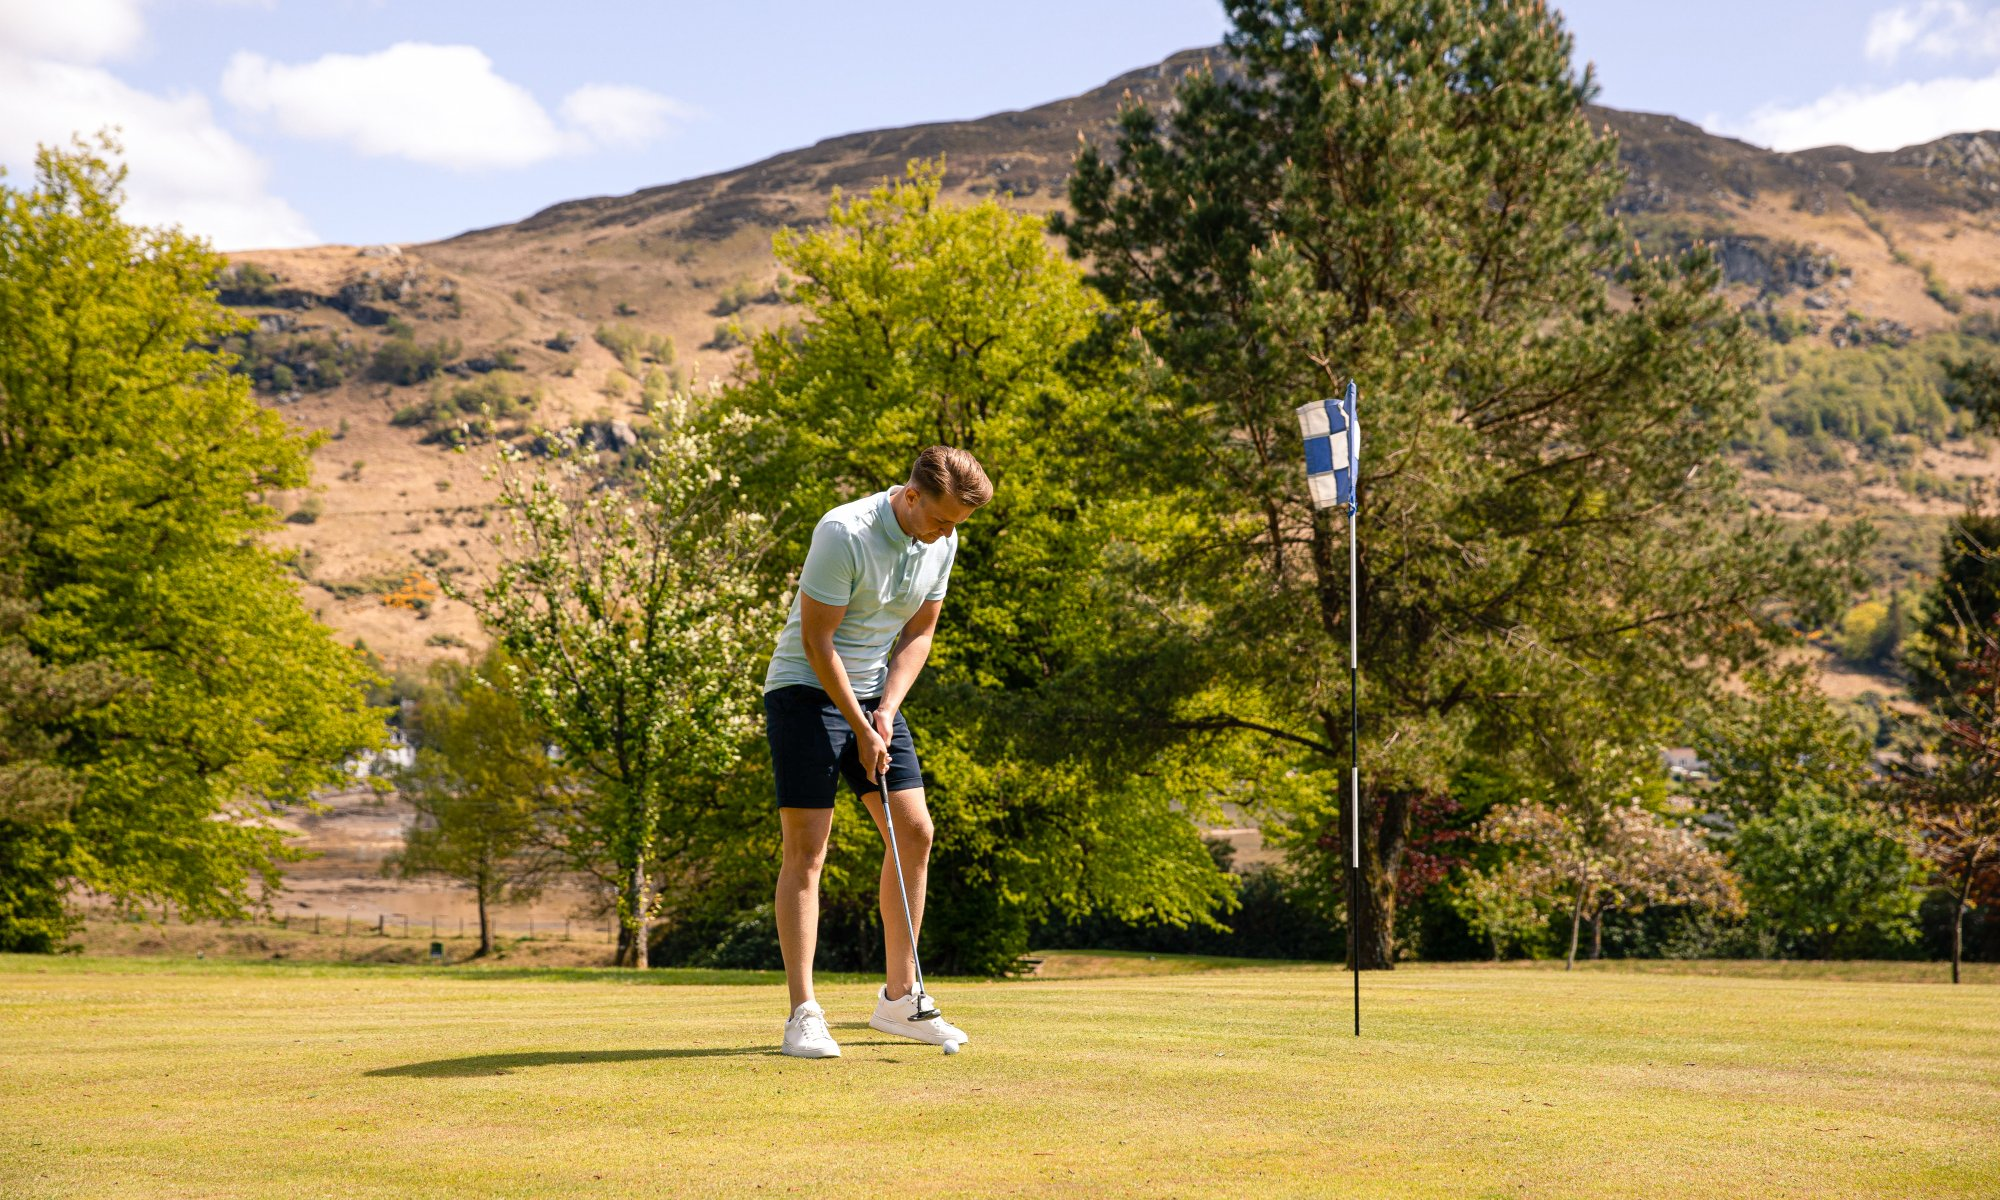 Try out our scenic 9-hole golf course